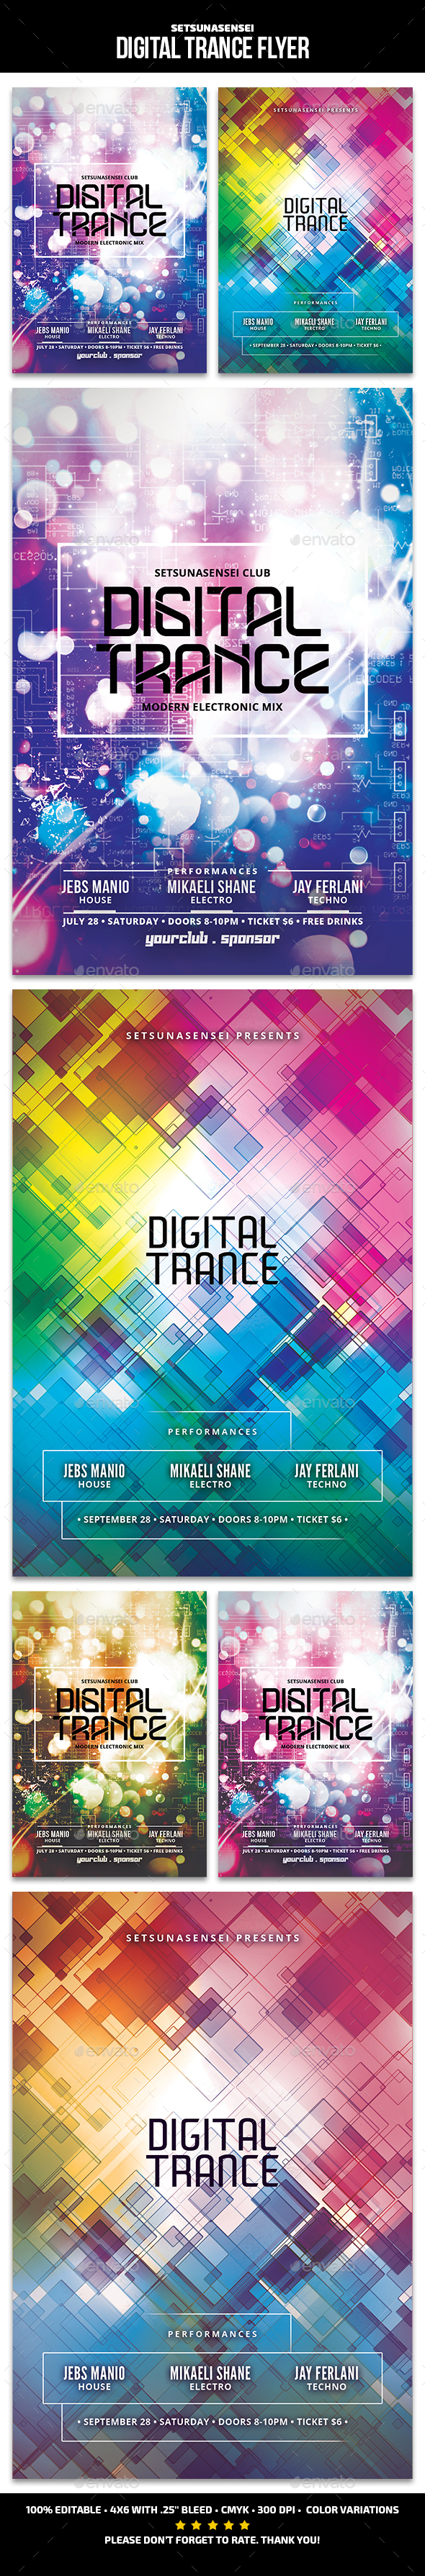 Digital Trance Flyer - Clubs & Parties Events